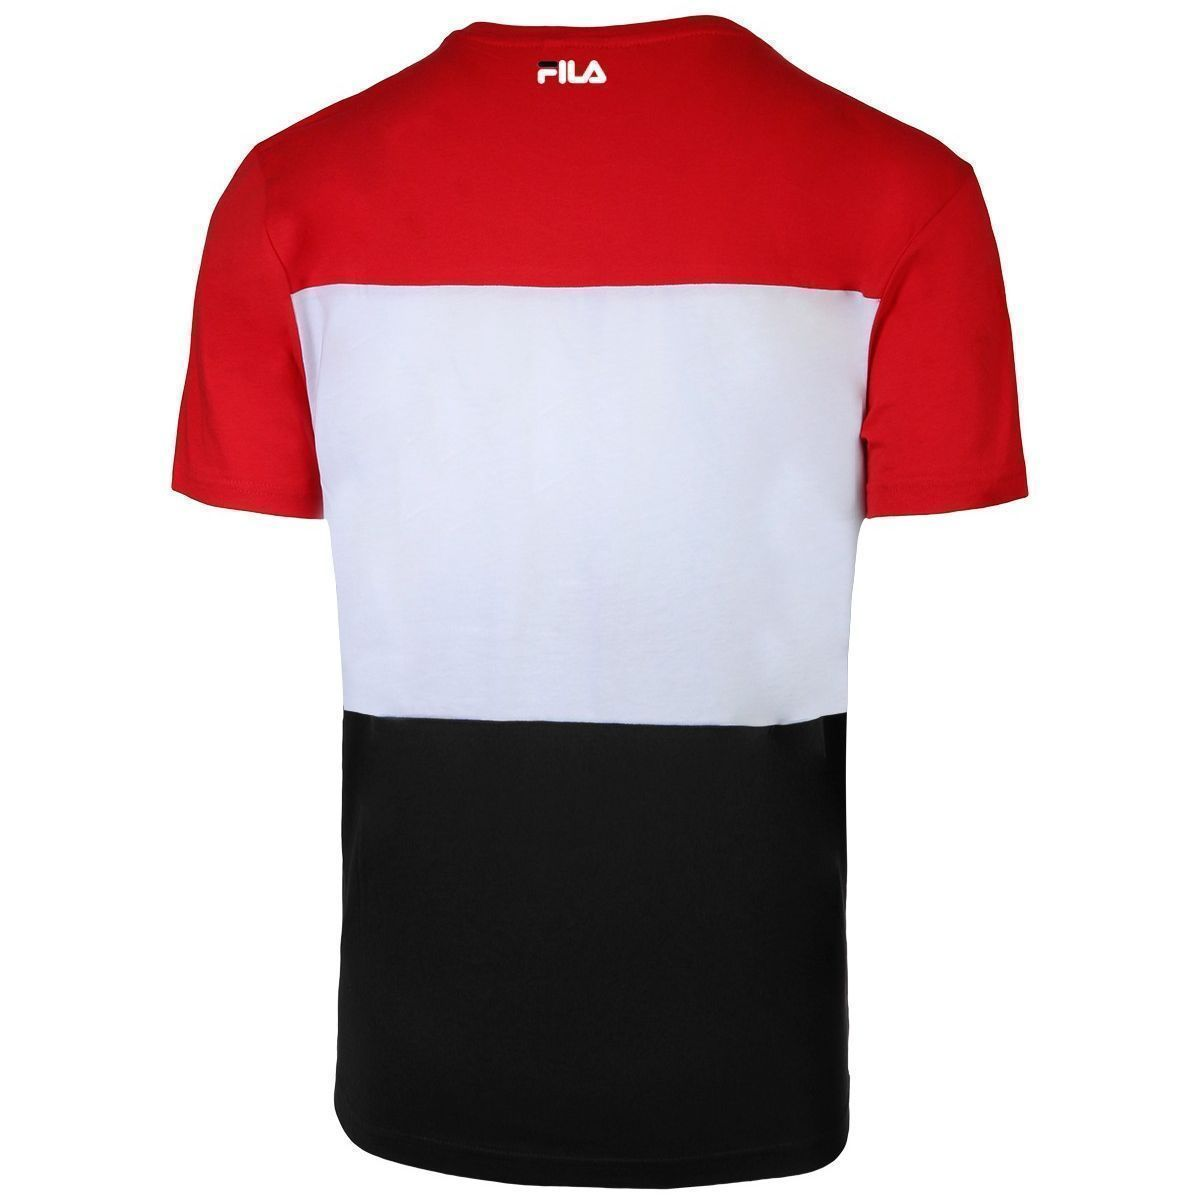 Fila homme men day tee rouge1187101_3